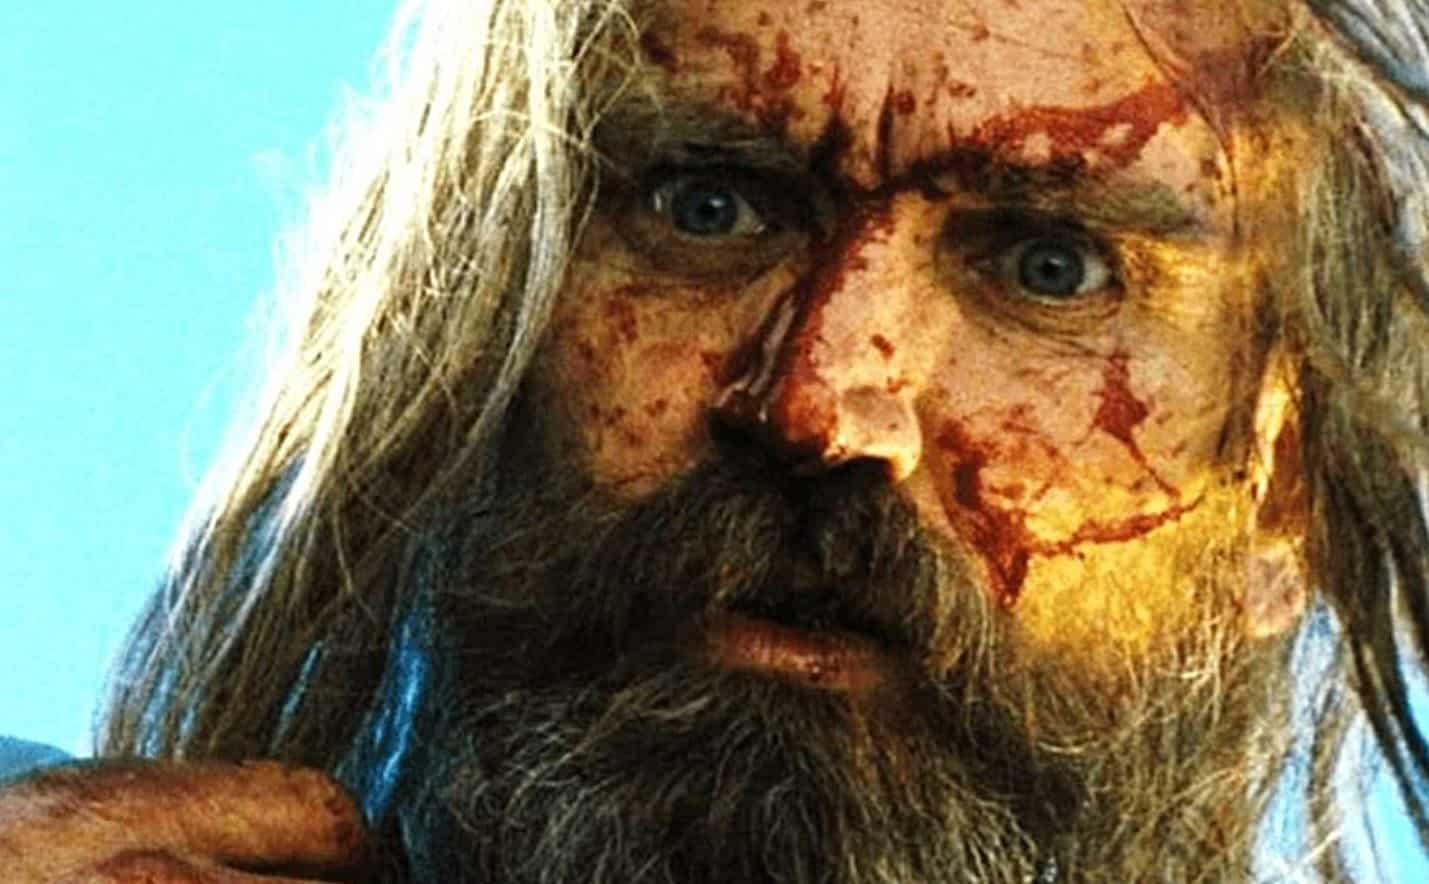 rob zombie says otis is  u0026quot worse than ever u0026quot  in  u0026 39 three from hell u0026 39